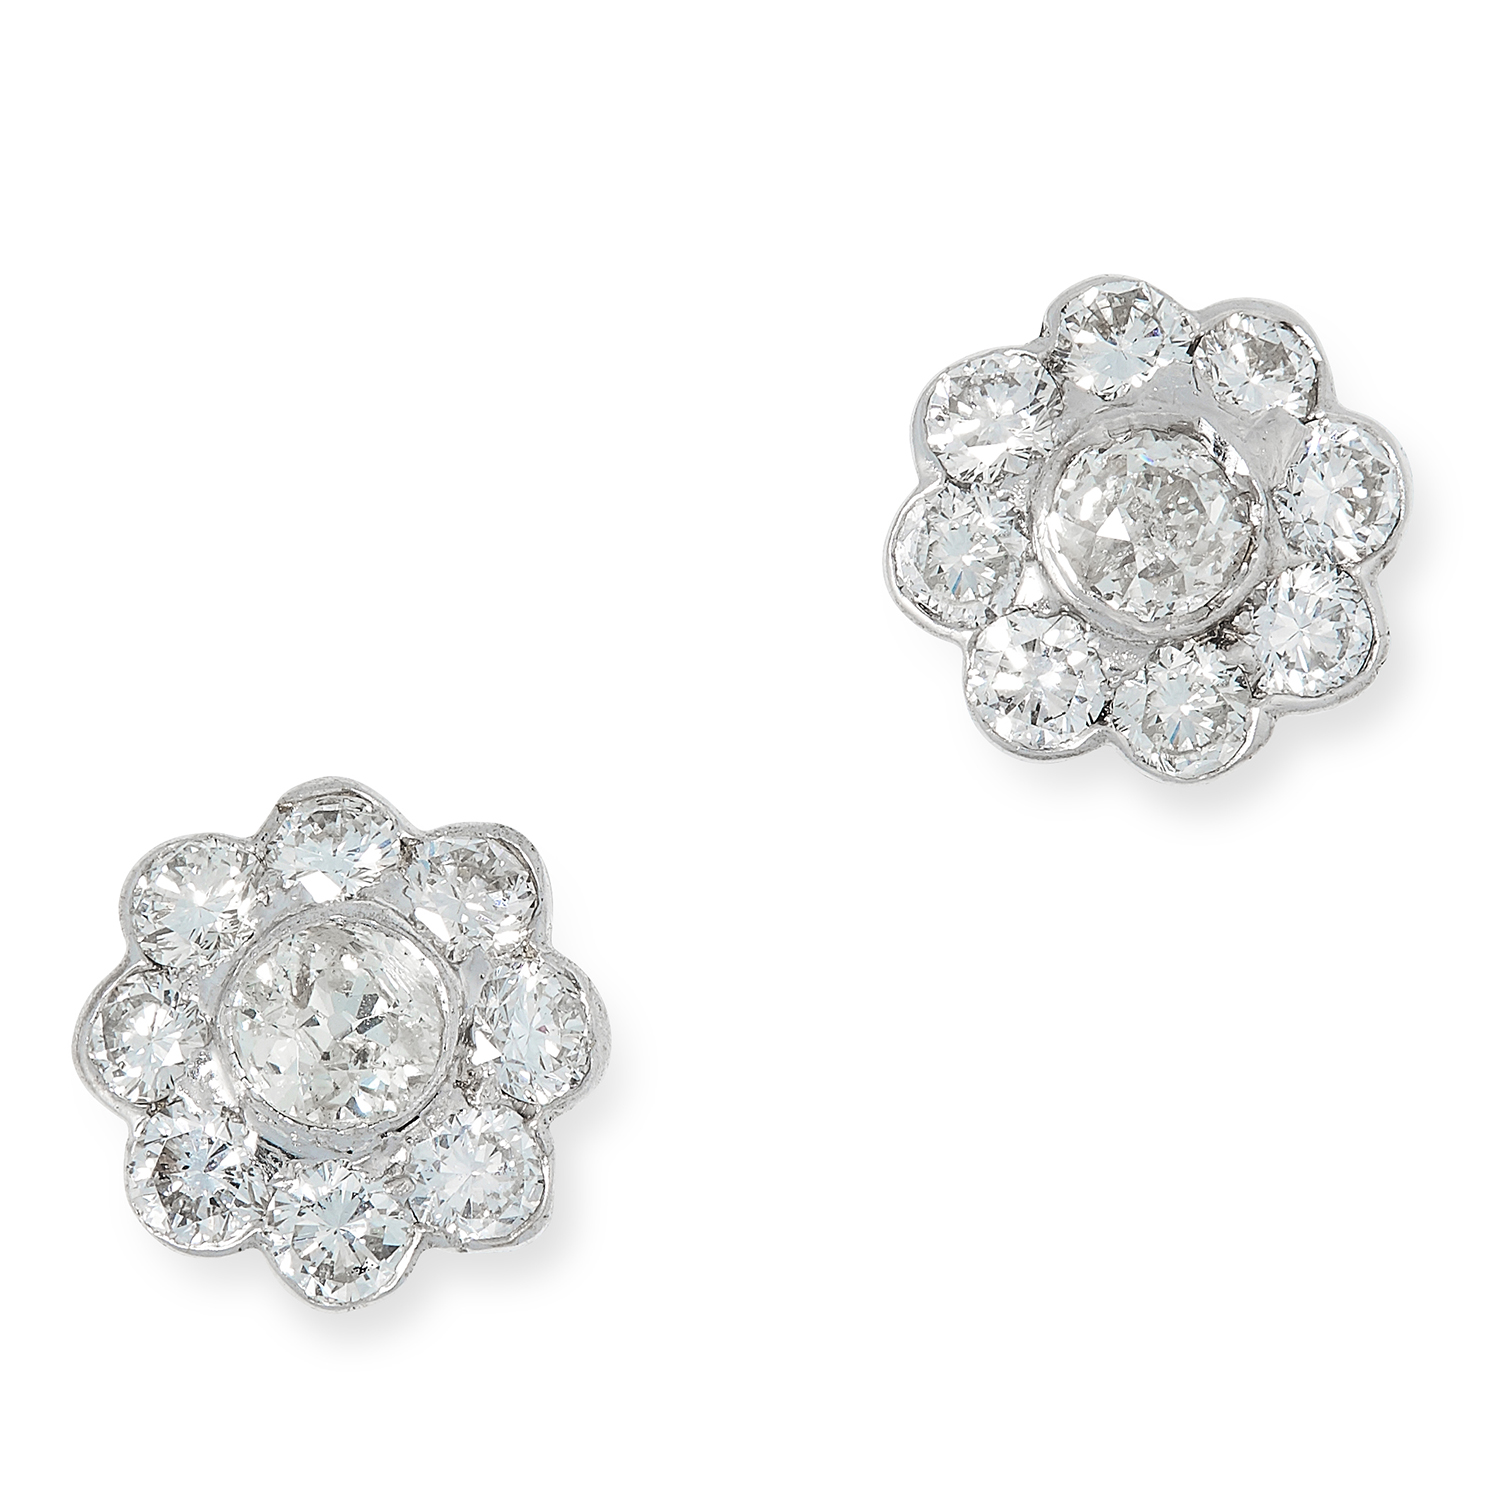 DIAMOND CLUSTER EARRINGS set with round cut diamonds totalling approximately 1.64 carats, 3.3g.